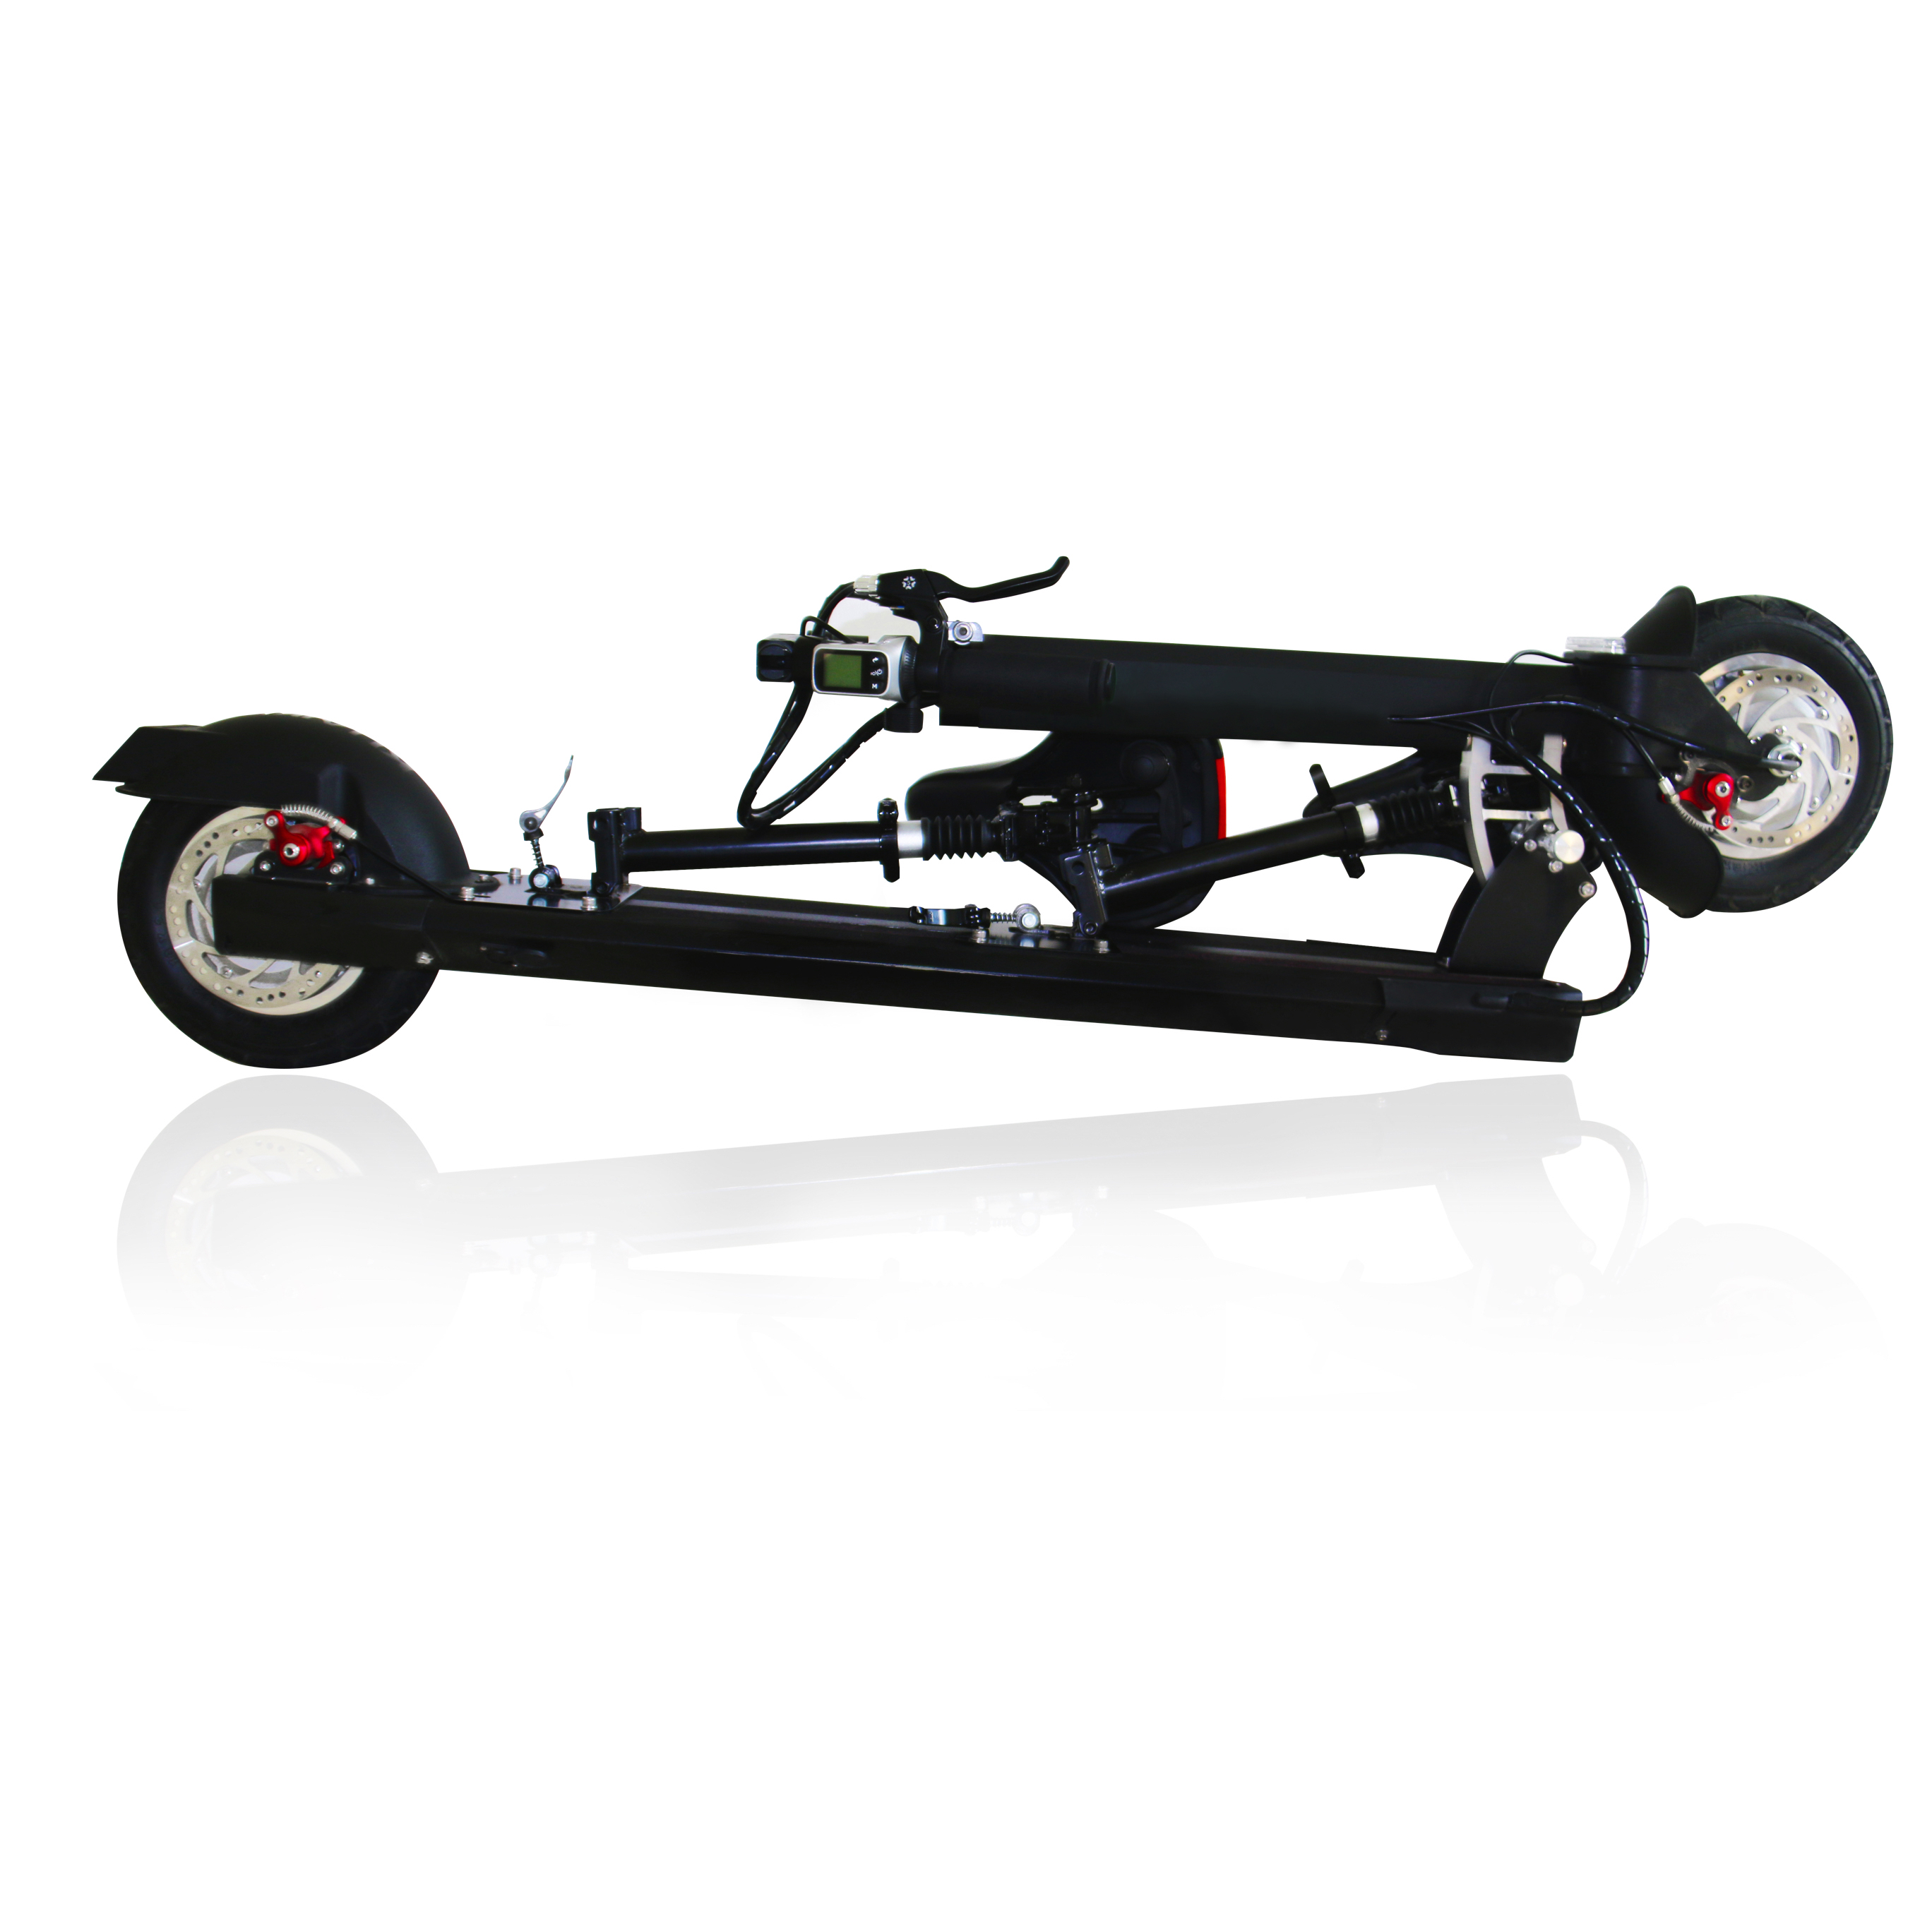 Smart Ant completely folded 1 - Smart Ant Pro for Rent